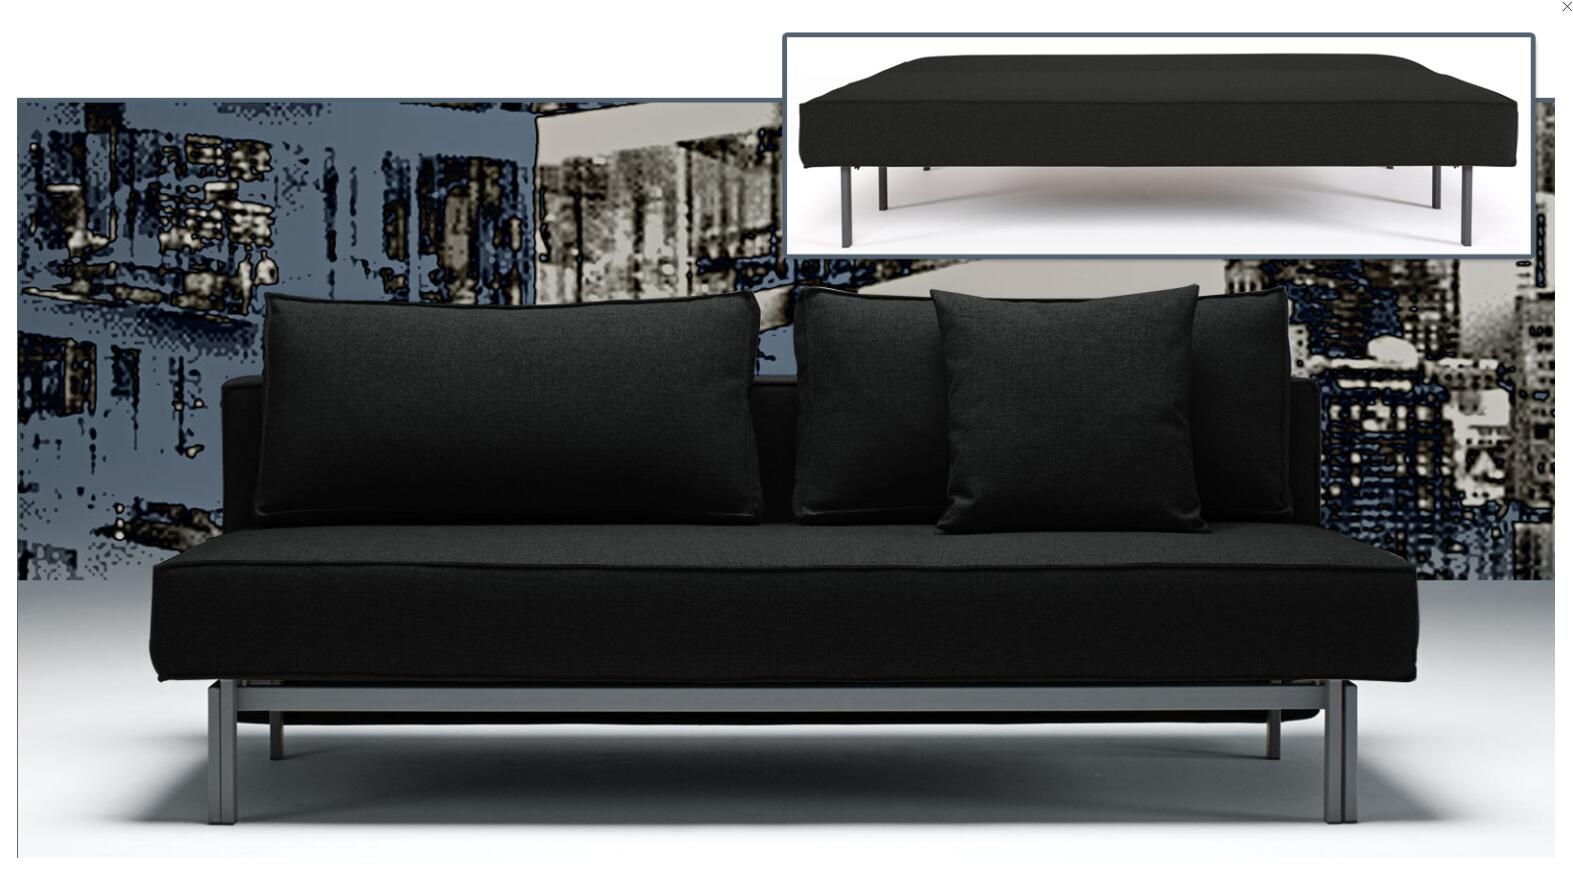 How to Buy Sofas for Sleeping Part 2